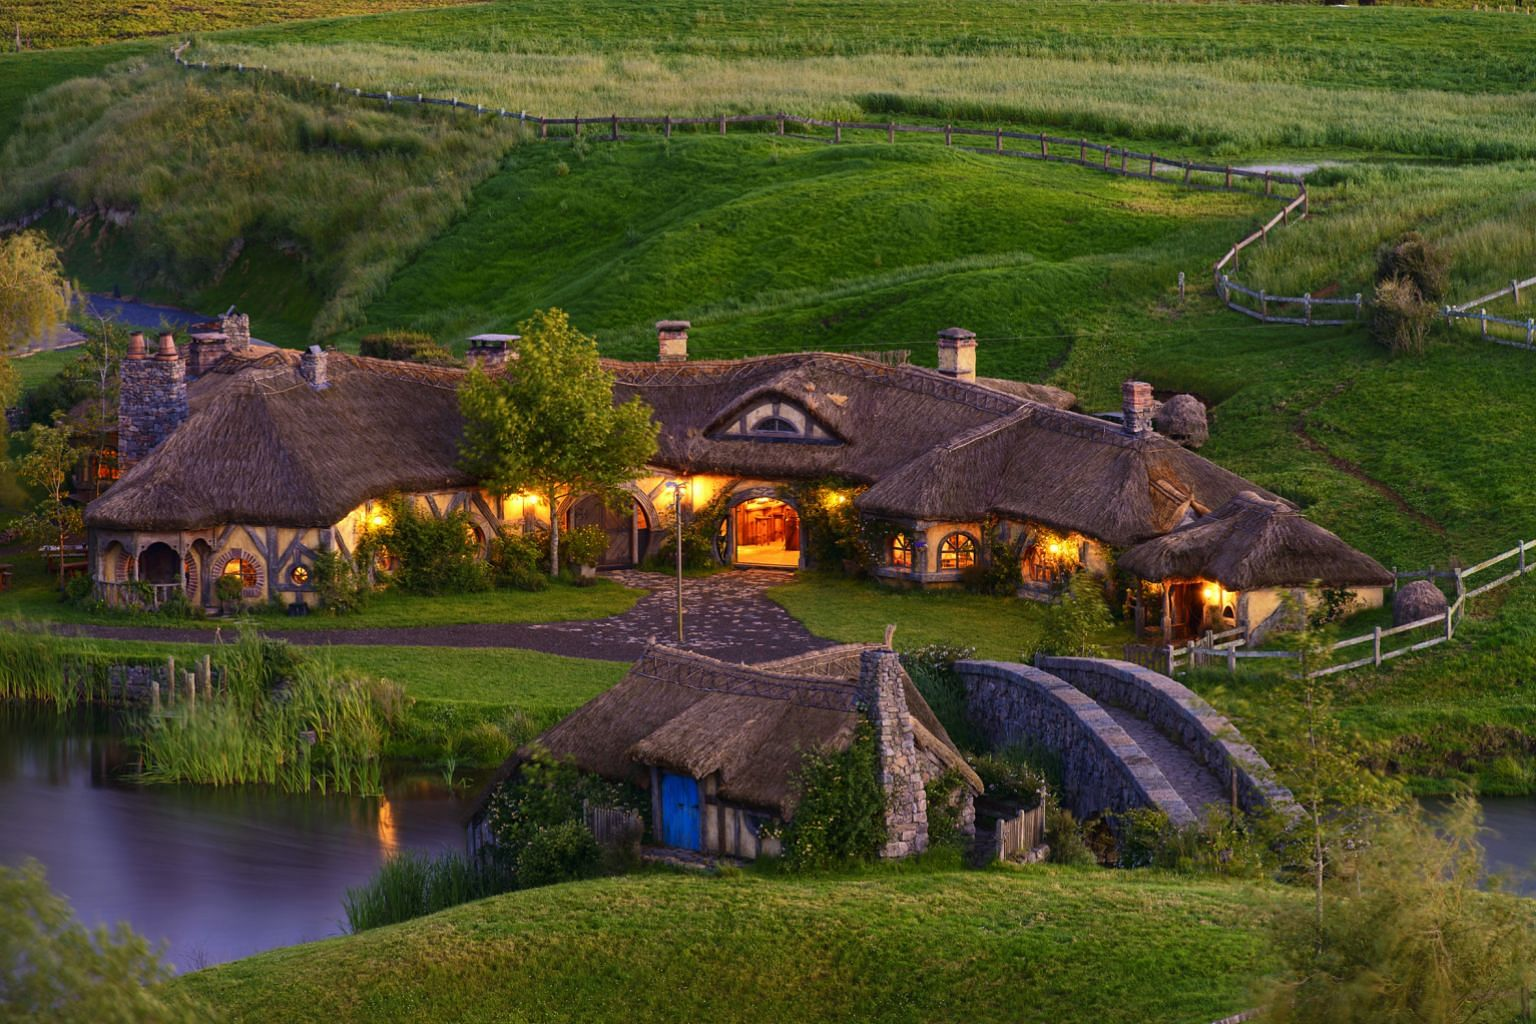 The movie set of The Hobbit (far left) in New Zealand is a hot holiday destination among travellers from Singapore, says Dynasty Travel. It adds that Finland is also popular, and visitors can stay in a glass igloo (left) and, if they are lucky, catch